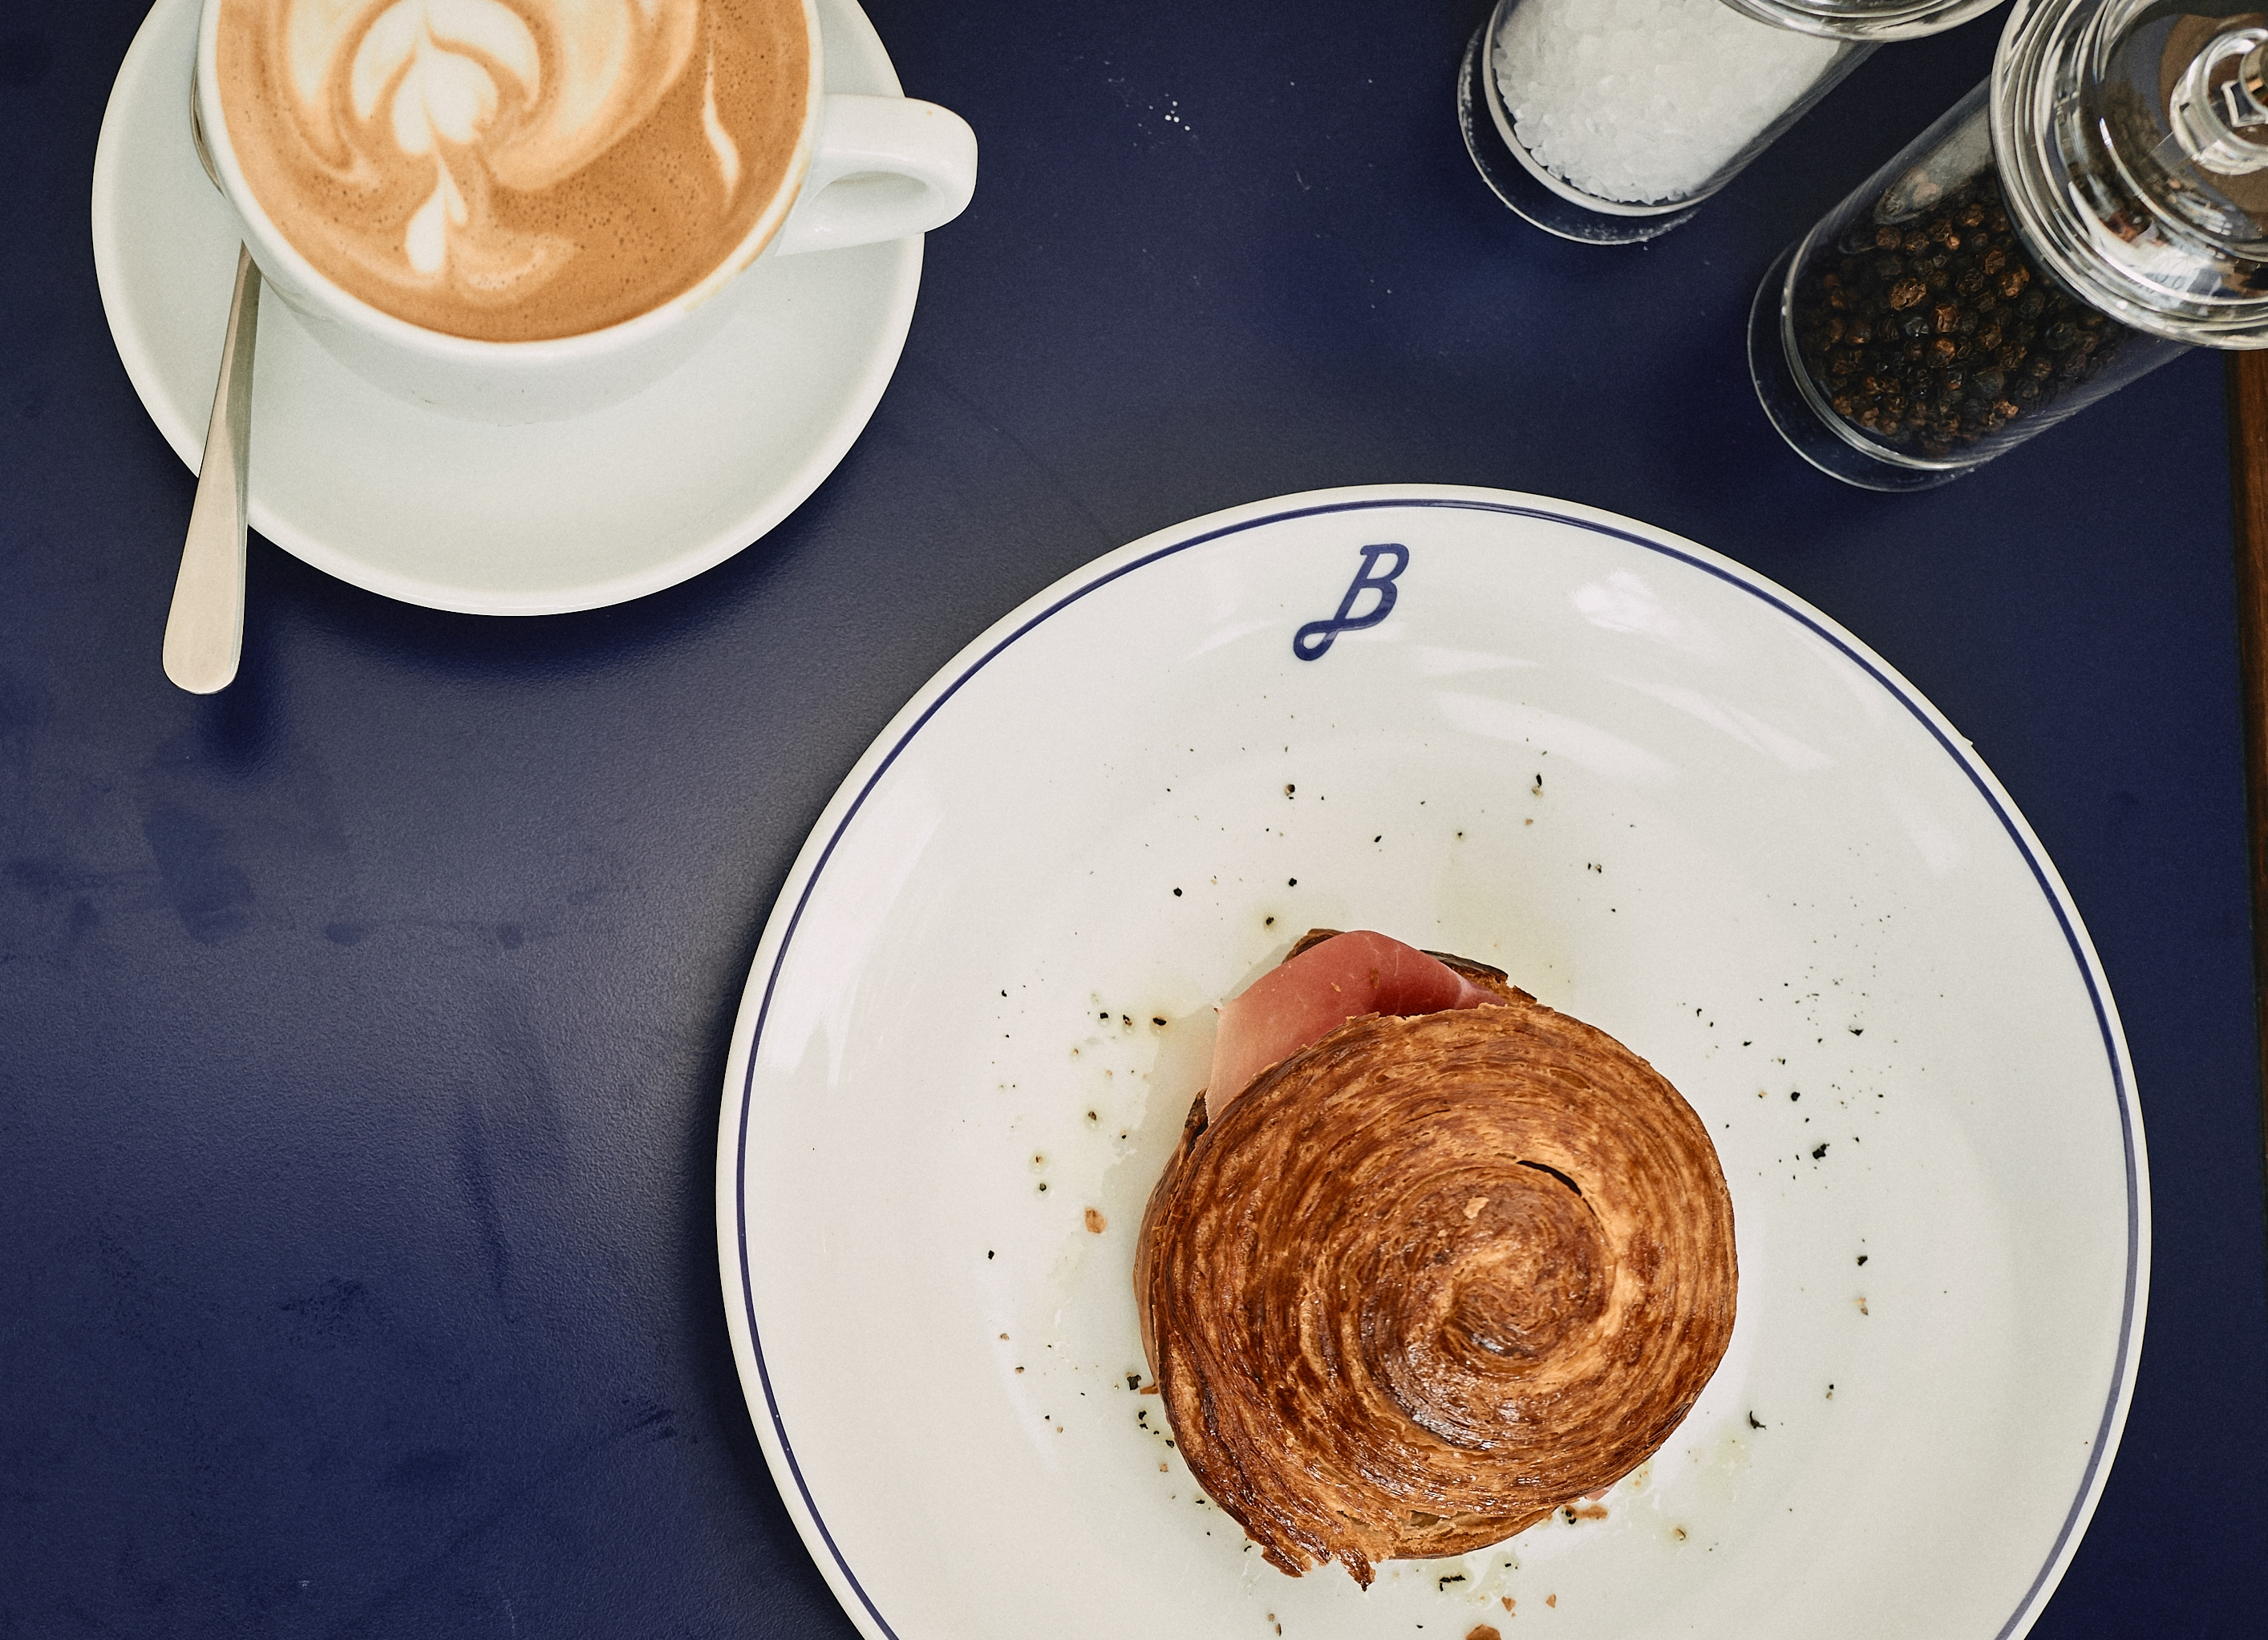 Perfect cappuccino with a croissant filled with Parma Ham: the best way to start the day!